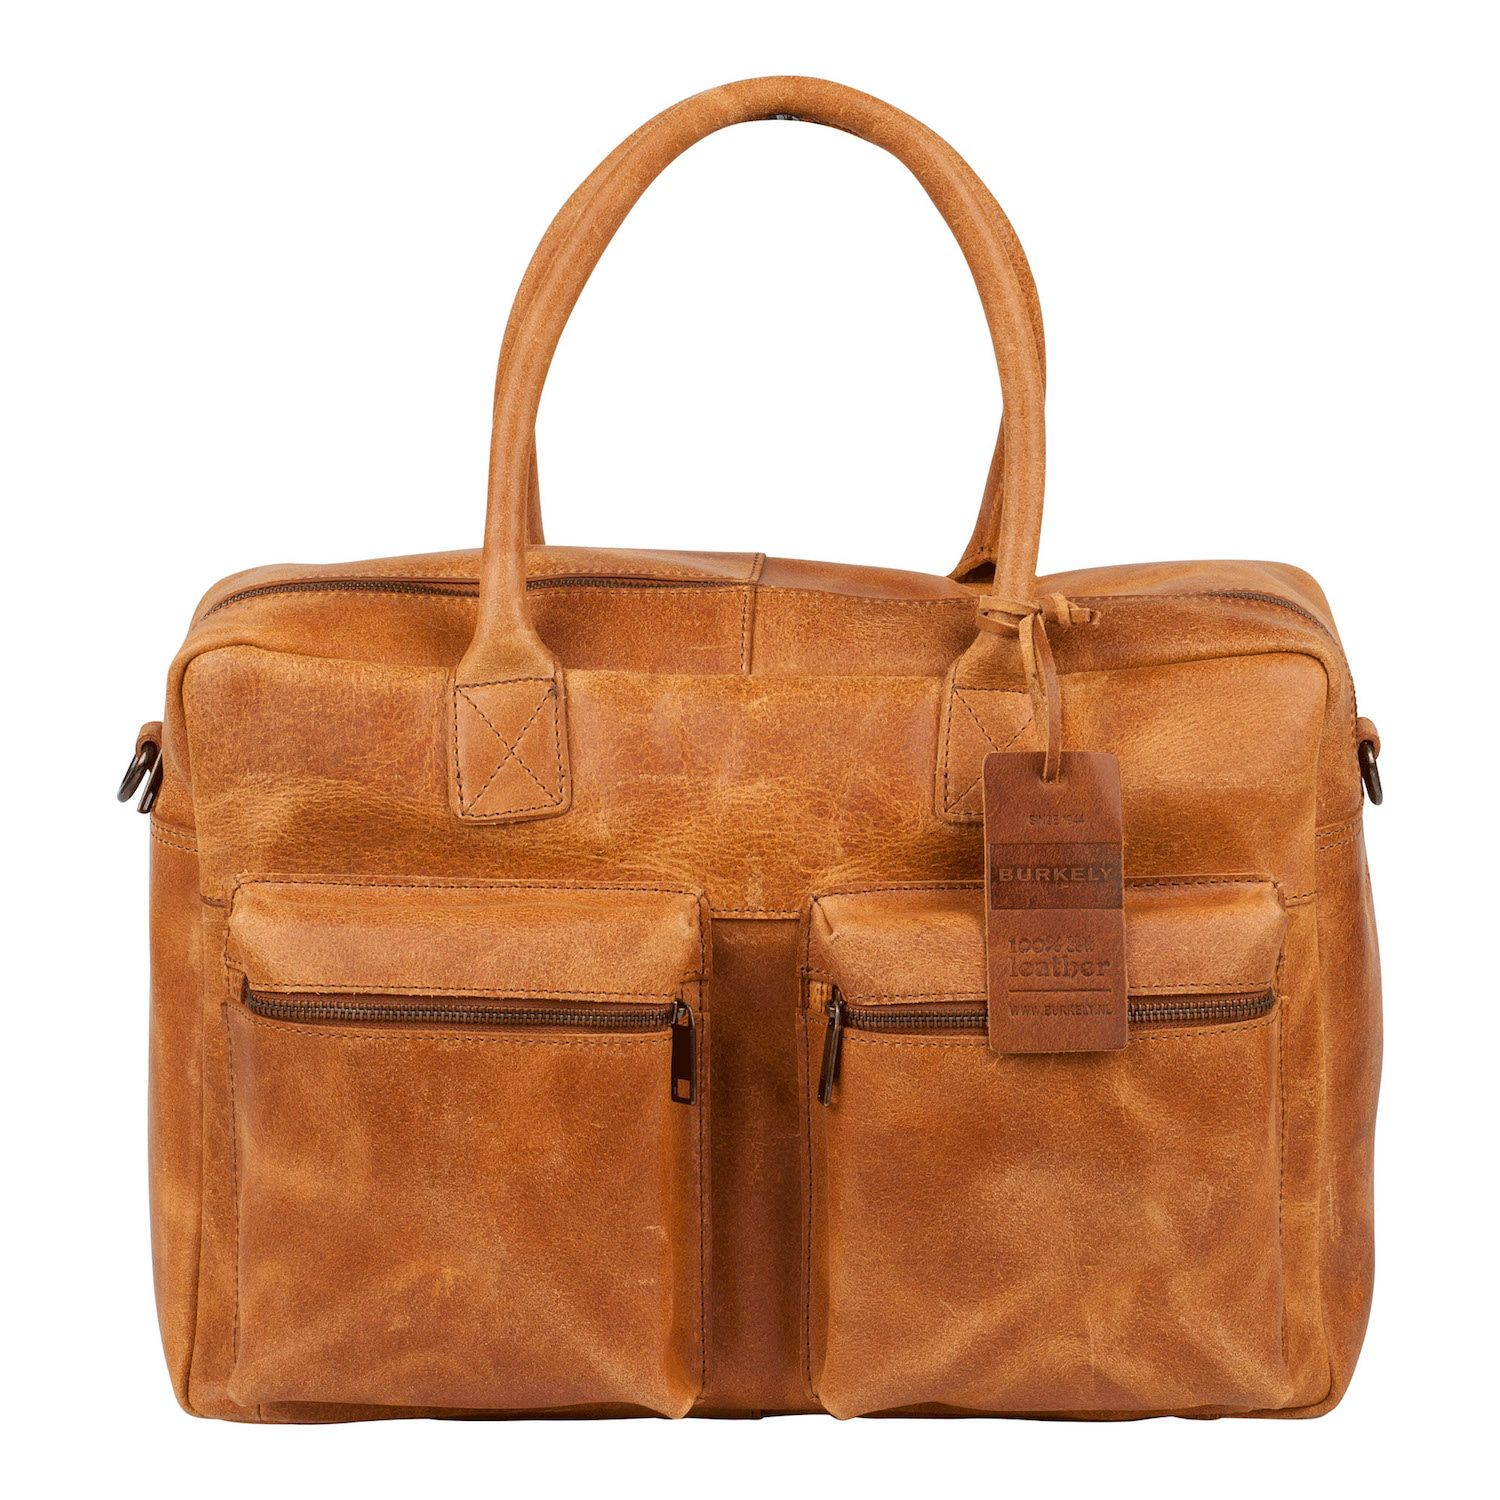 Laptoptas Burkely Alex Businessbag Vintage Shoulderbag Cognac 15 inch